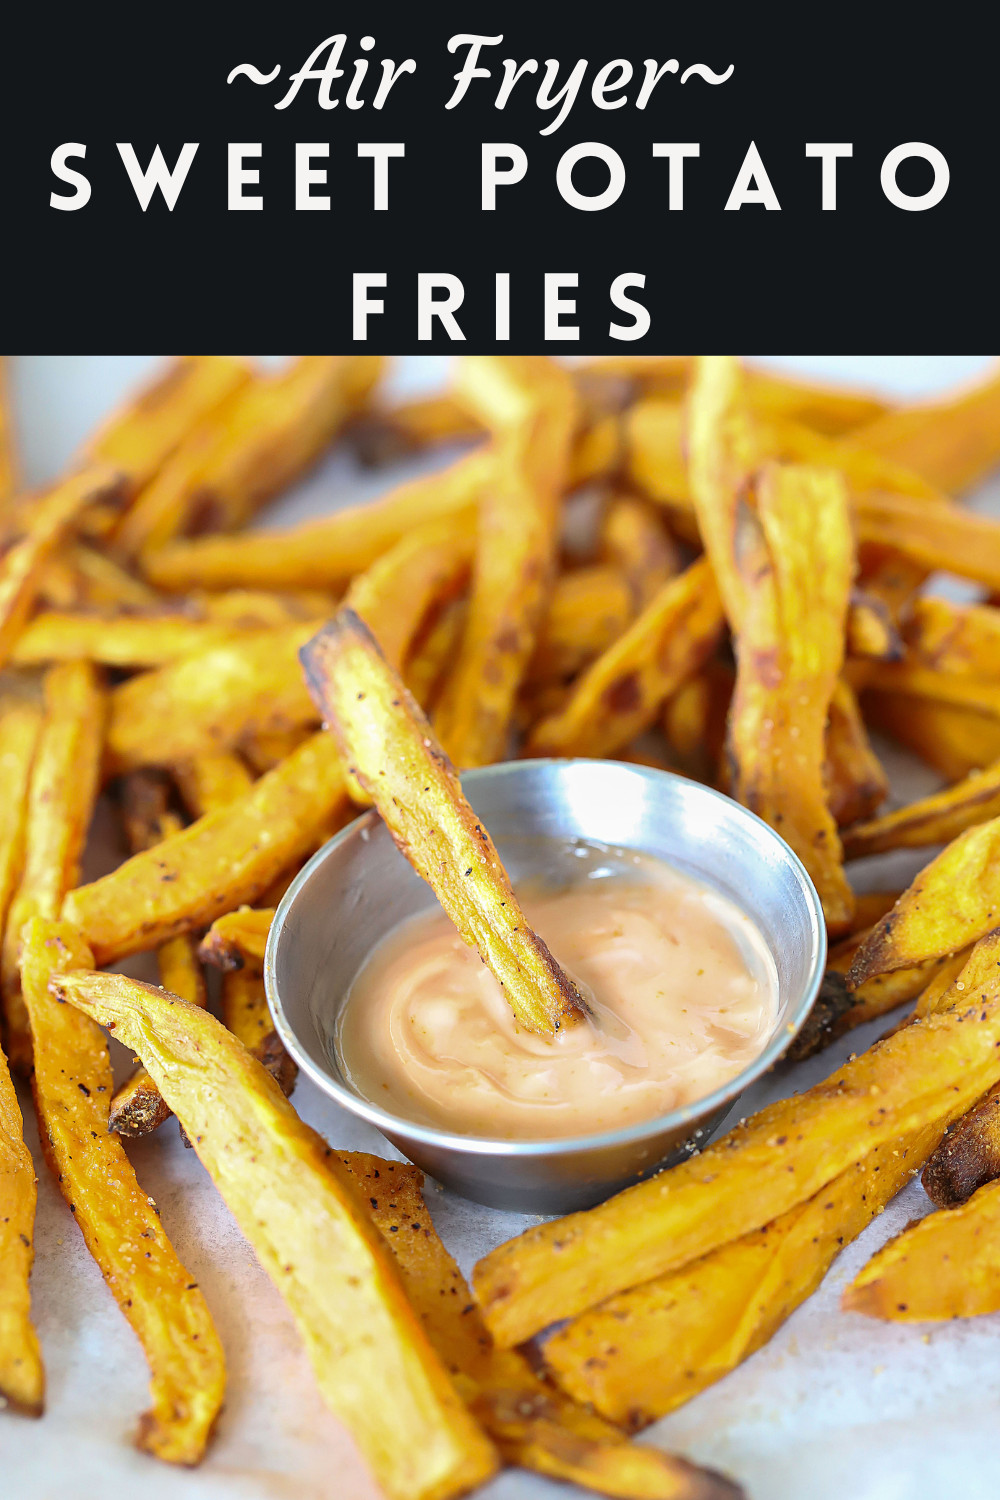 If you love French fries but want a fry that's a little different, try these Air Fryer Sweet Potato Fries! They're light, healthy and full of vitamins with a hint of sweet and salty. Such a great combination! #fries #frenchfries #sweetpotato #airfryer #easysnack #sidedish #healthy #easy #frysauce #yummyhealthyeasy via @jennikolaus